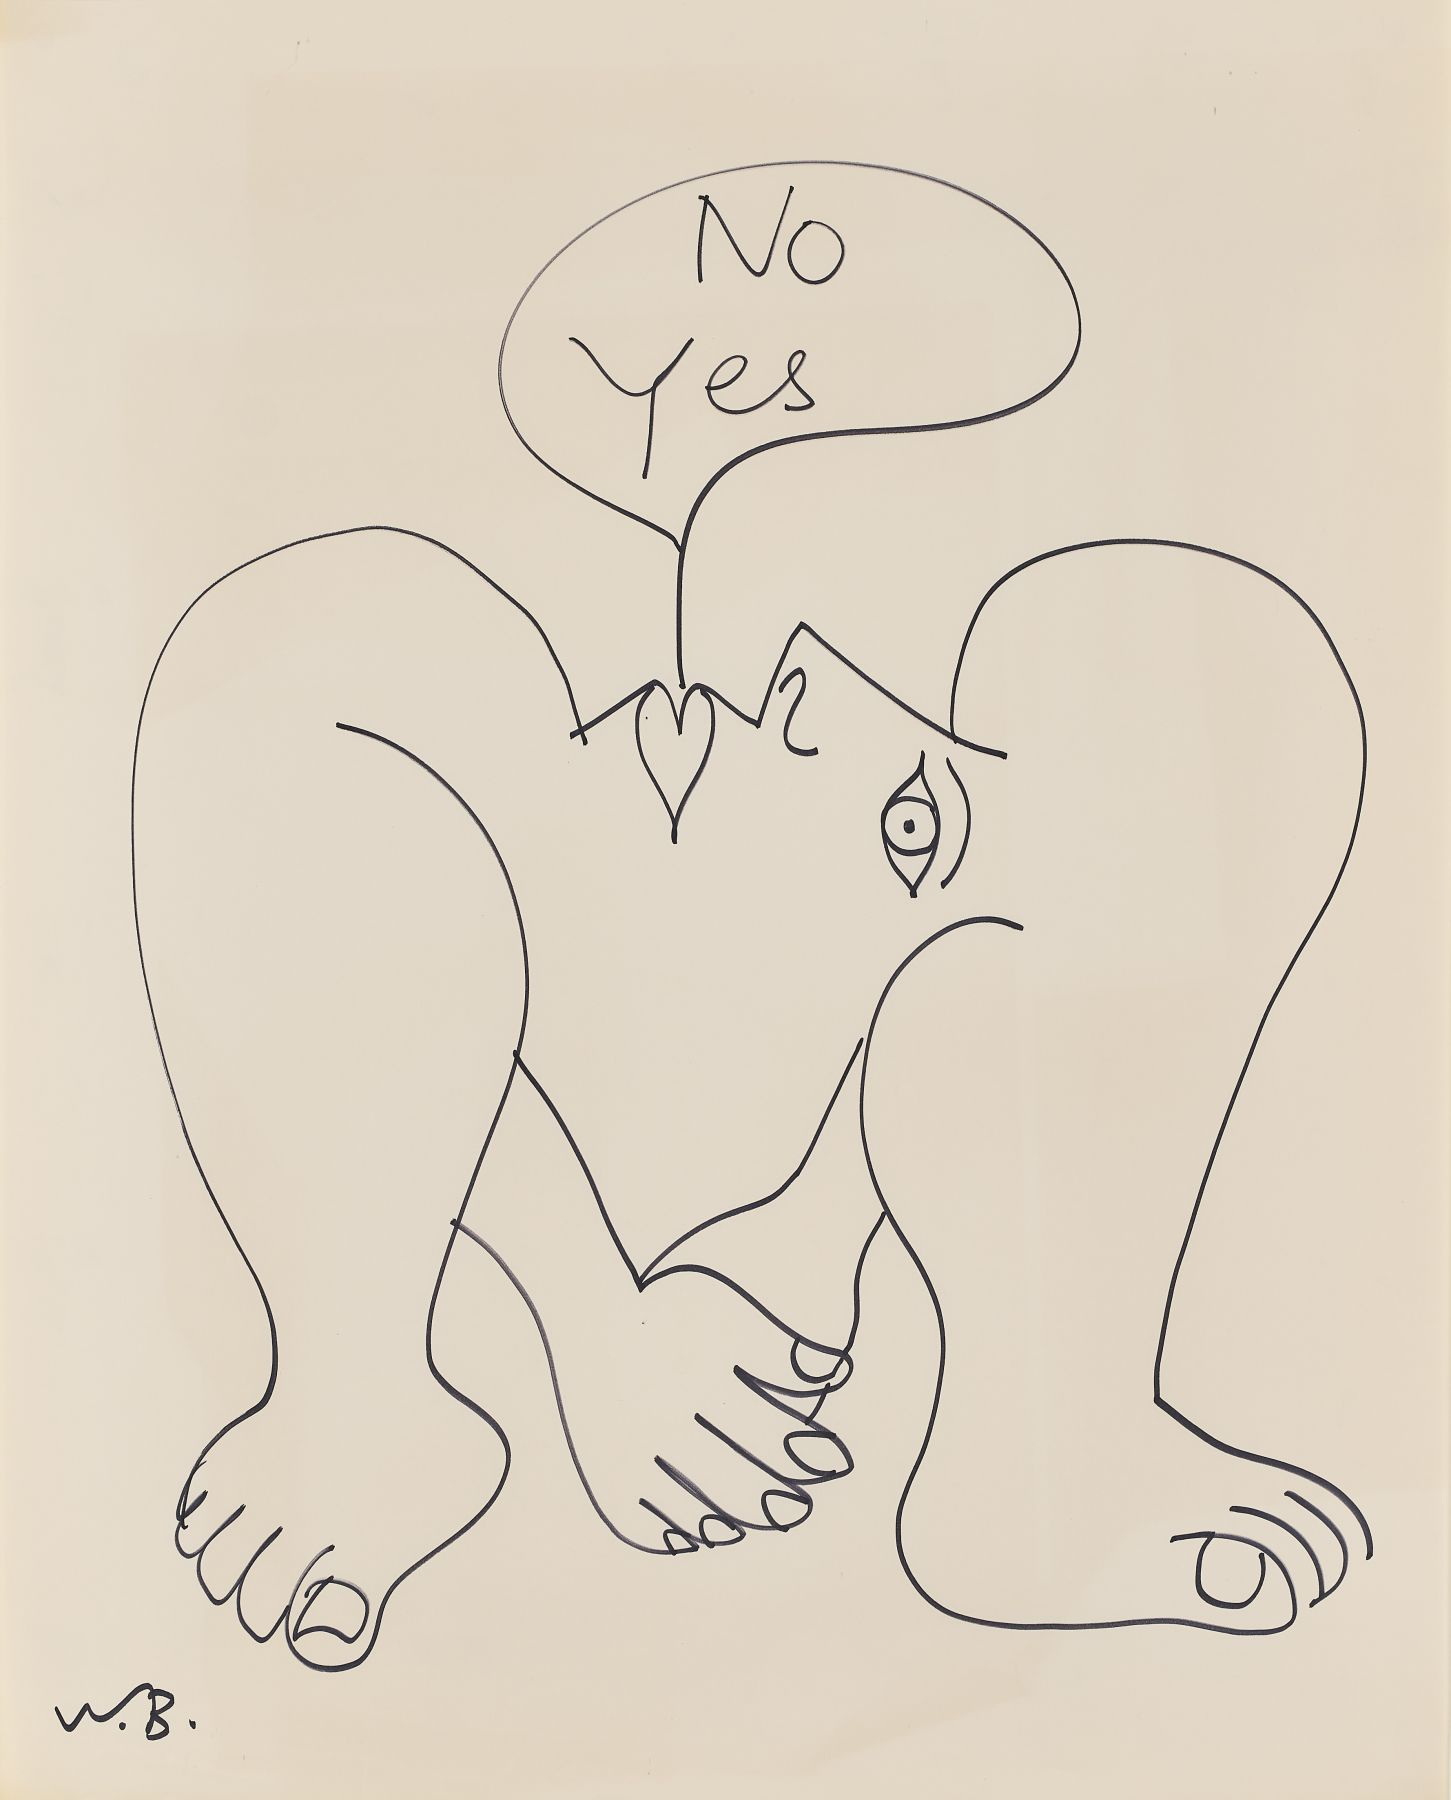 Walter battiss - Untitled (No Yes, hand over hand, below profile)